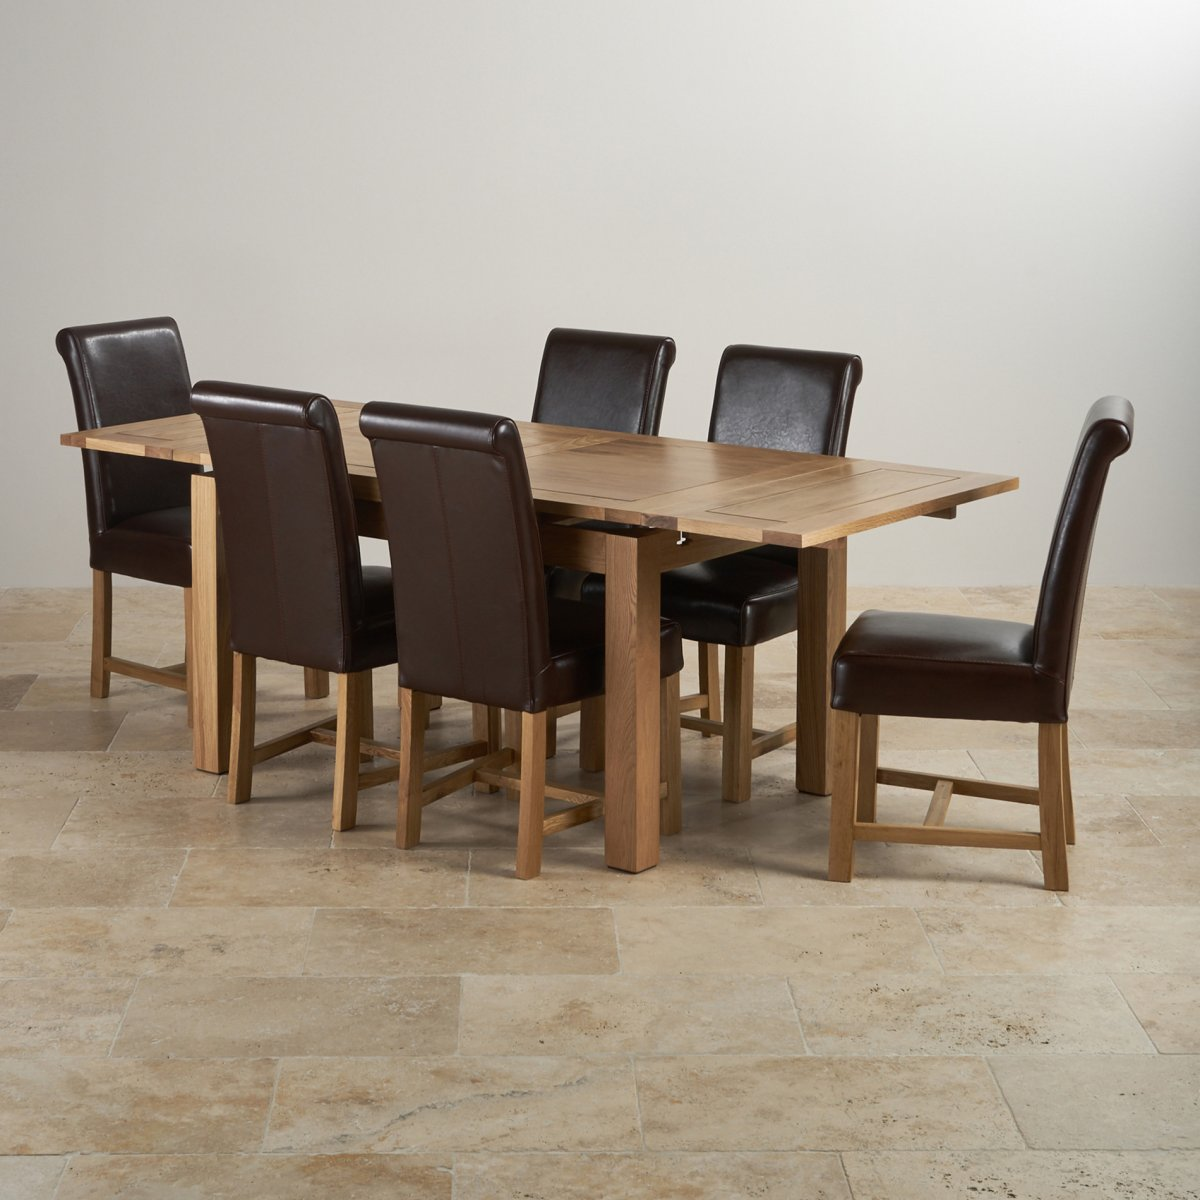 Dorset Extending Dining Set In Oak: Table + 6 Leather Chairs